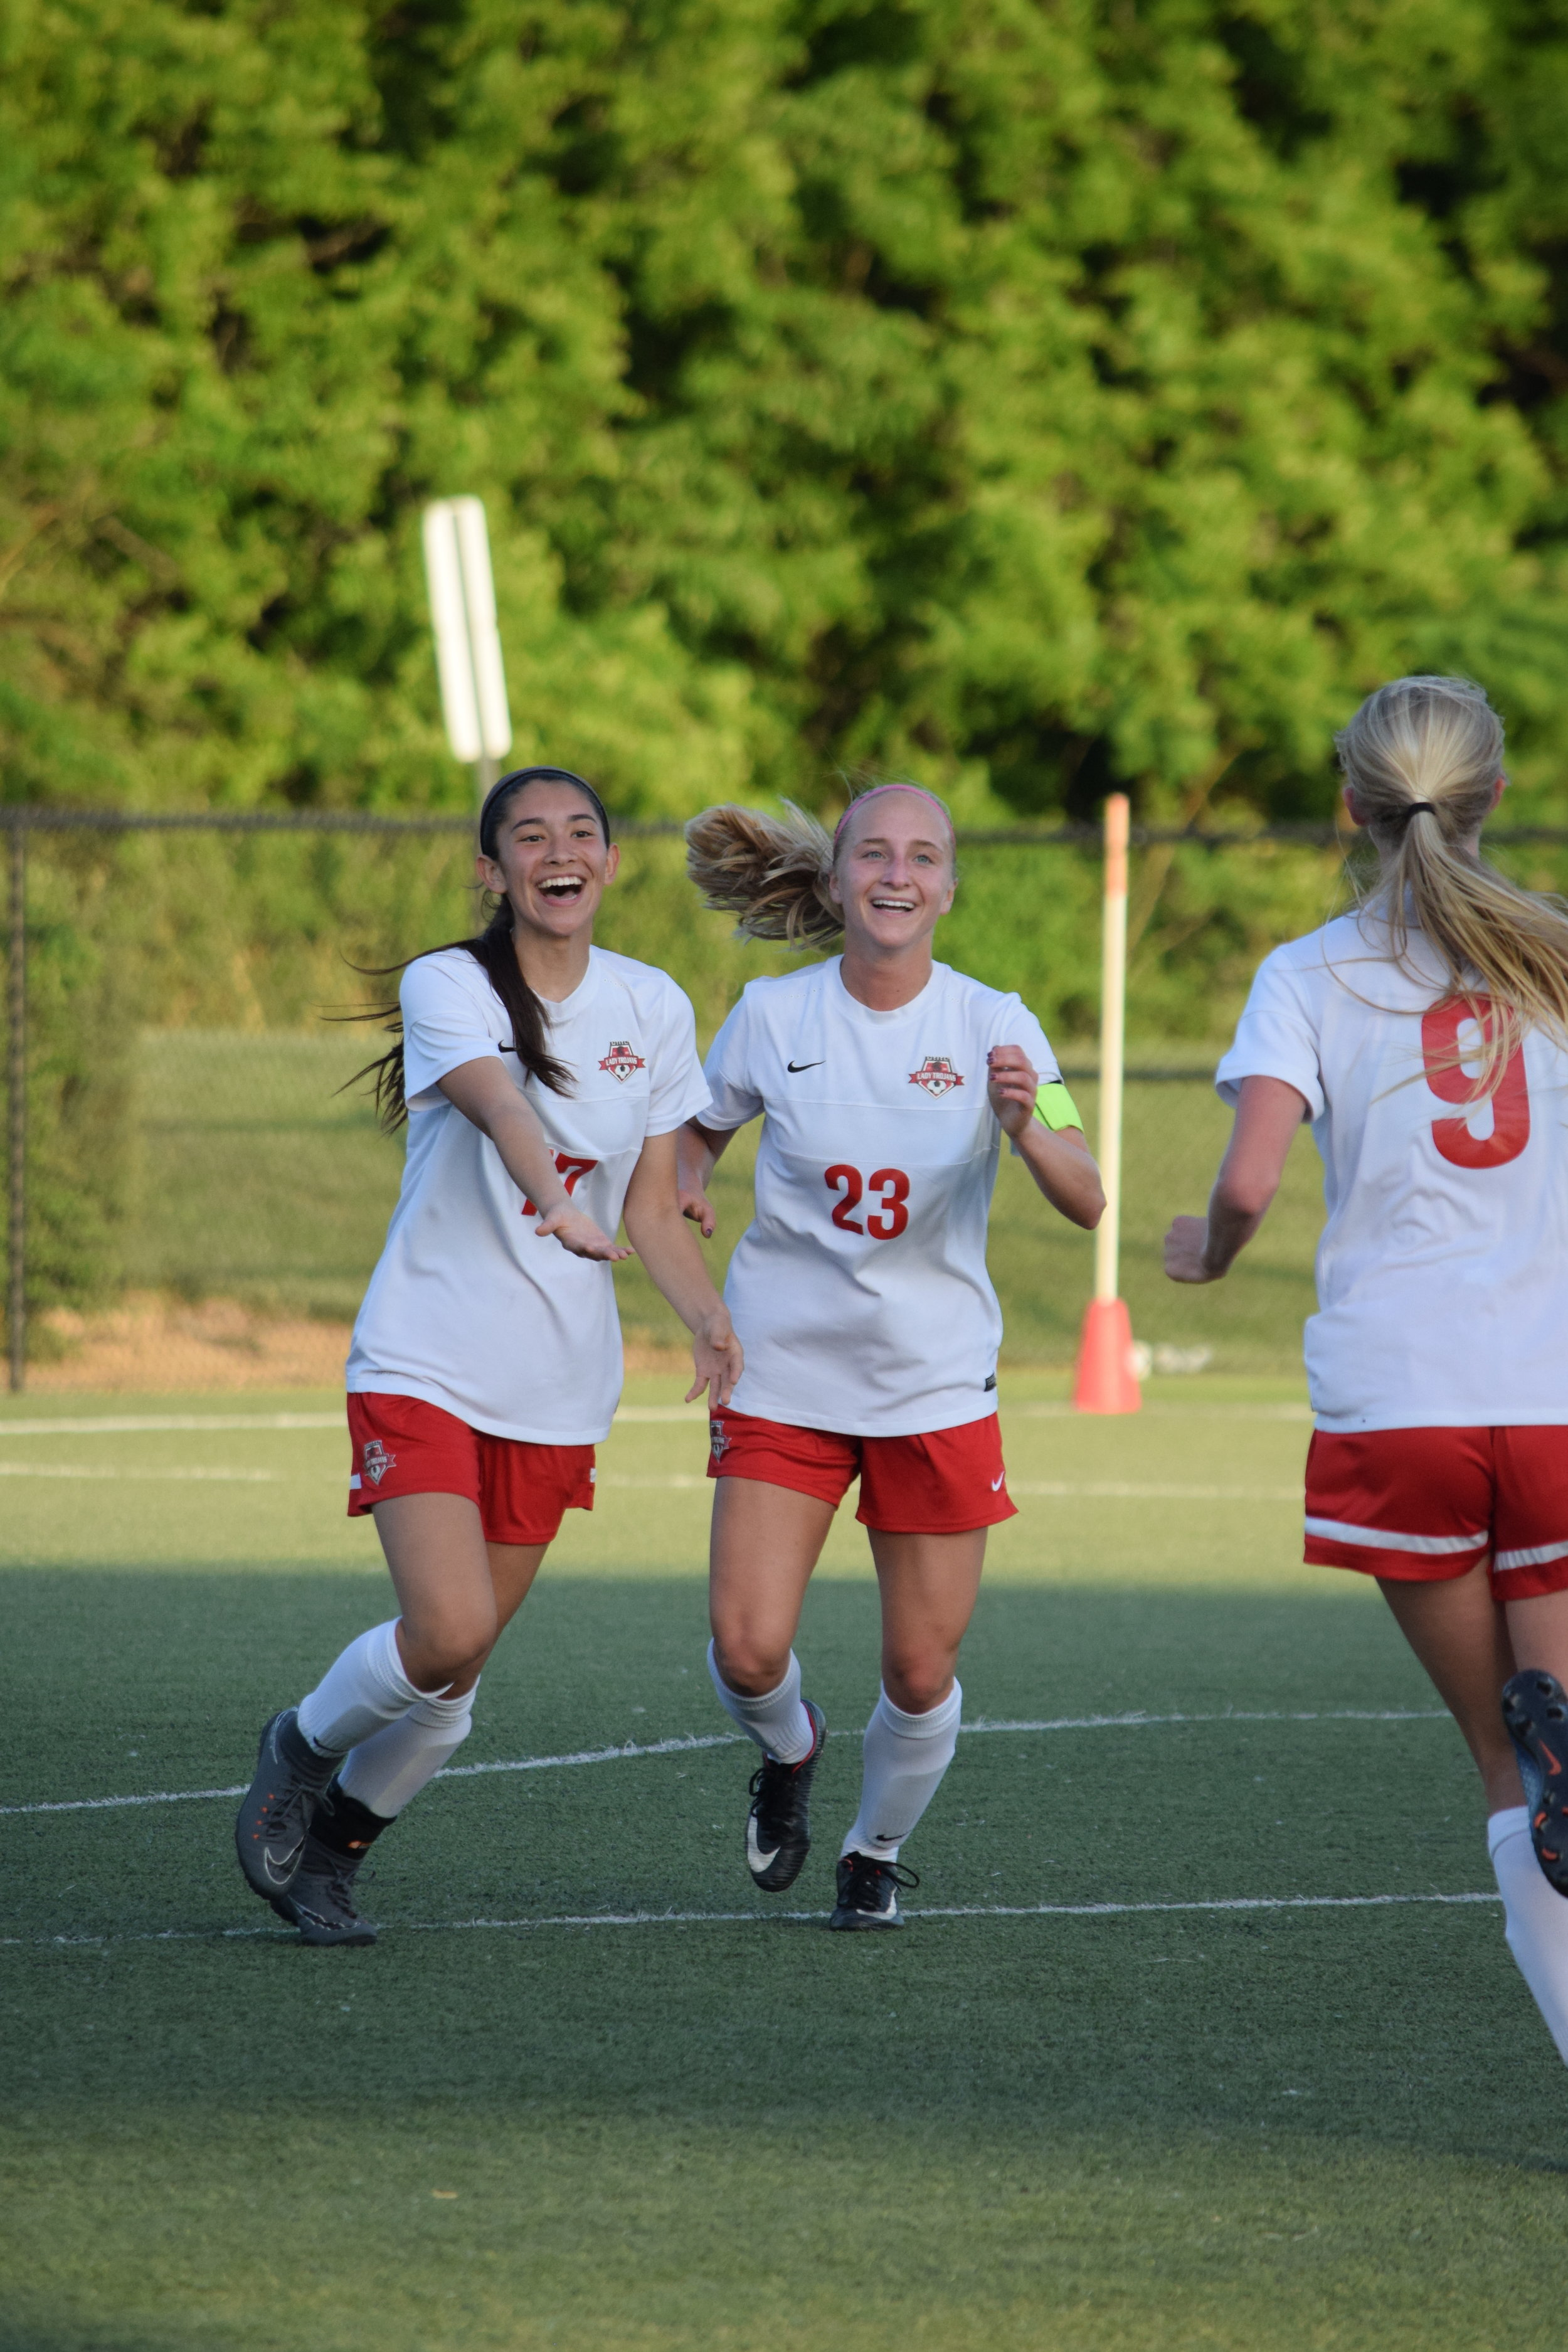 BRYCE MERENESS/Citizen photo Park Hill's Ayana Weissenfluh, left, and Ali Walls, celebrate the first goal of the game on Tuesday, May 22, against Liberty North in the Class 4 playoffs. The Trojans won 3-0 to advance to Saturday's quartefinal round.